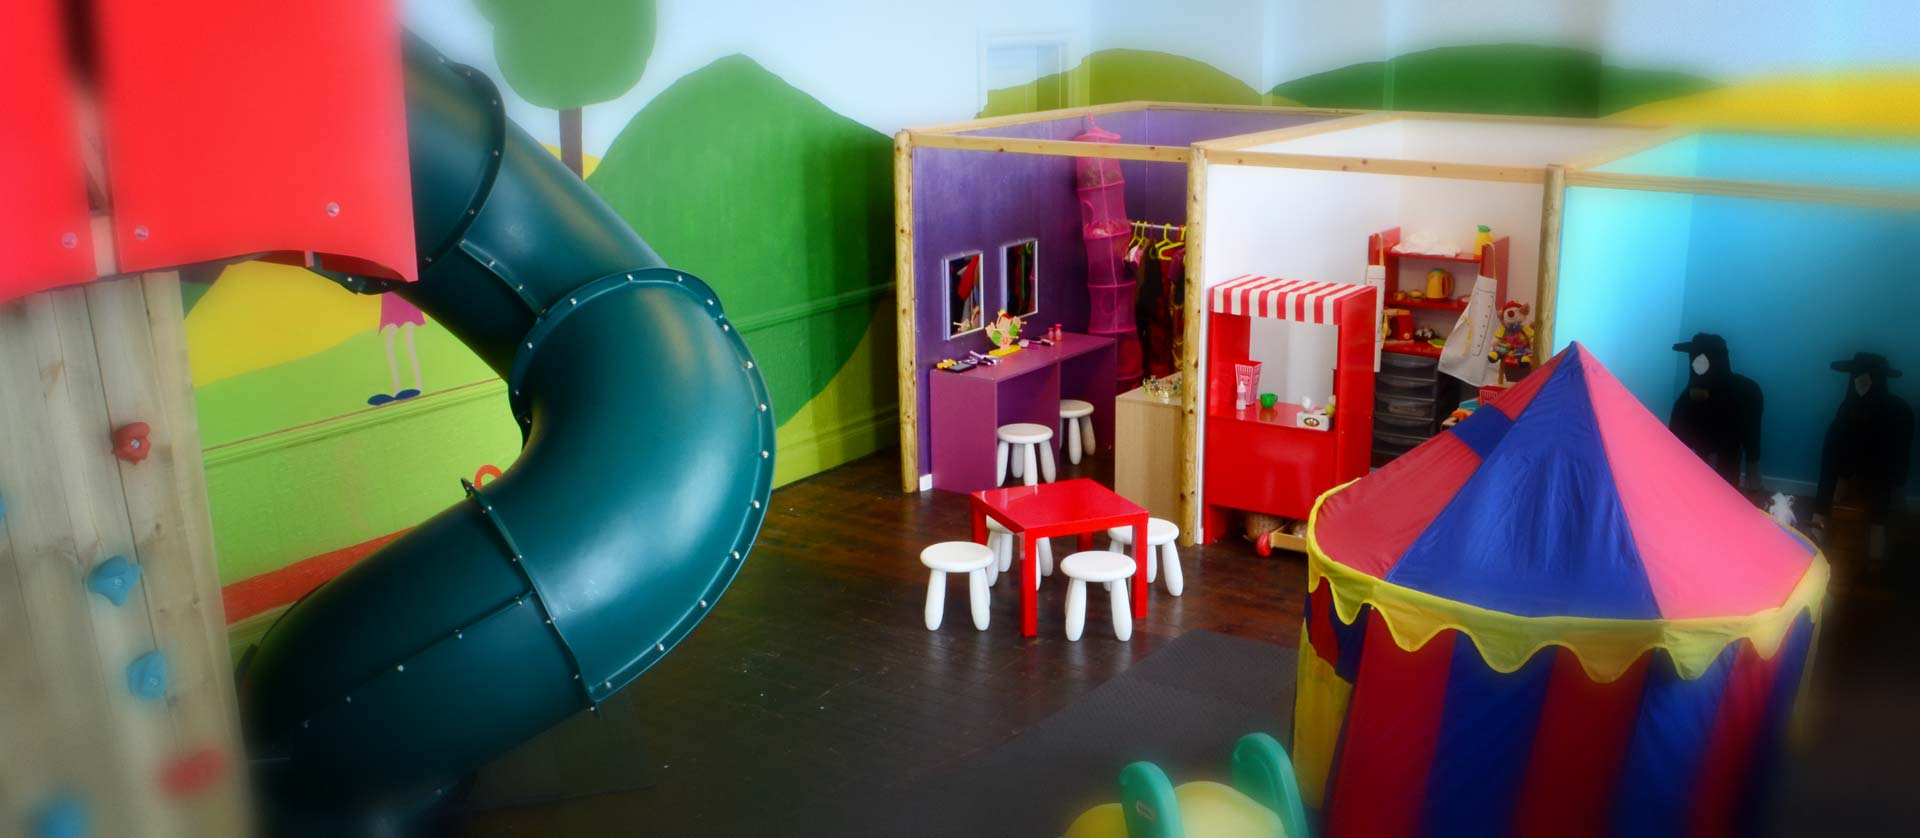 Fantasy play room at Magical Circus.